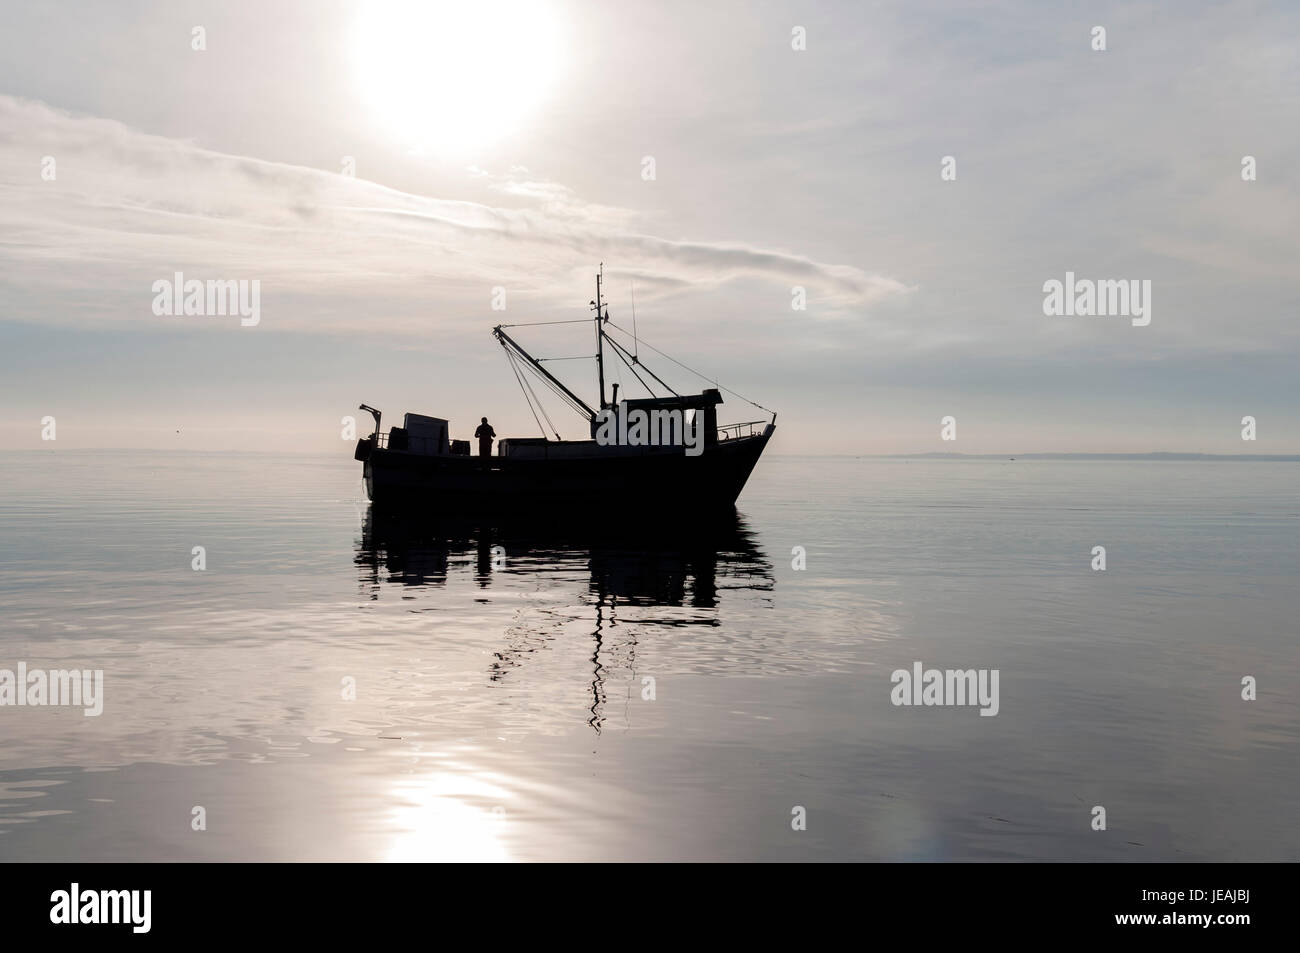 Barcos en Contraluz / Boats in shadow Stock Photo